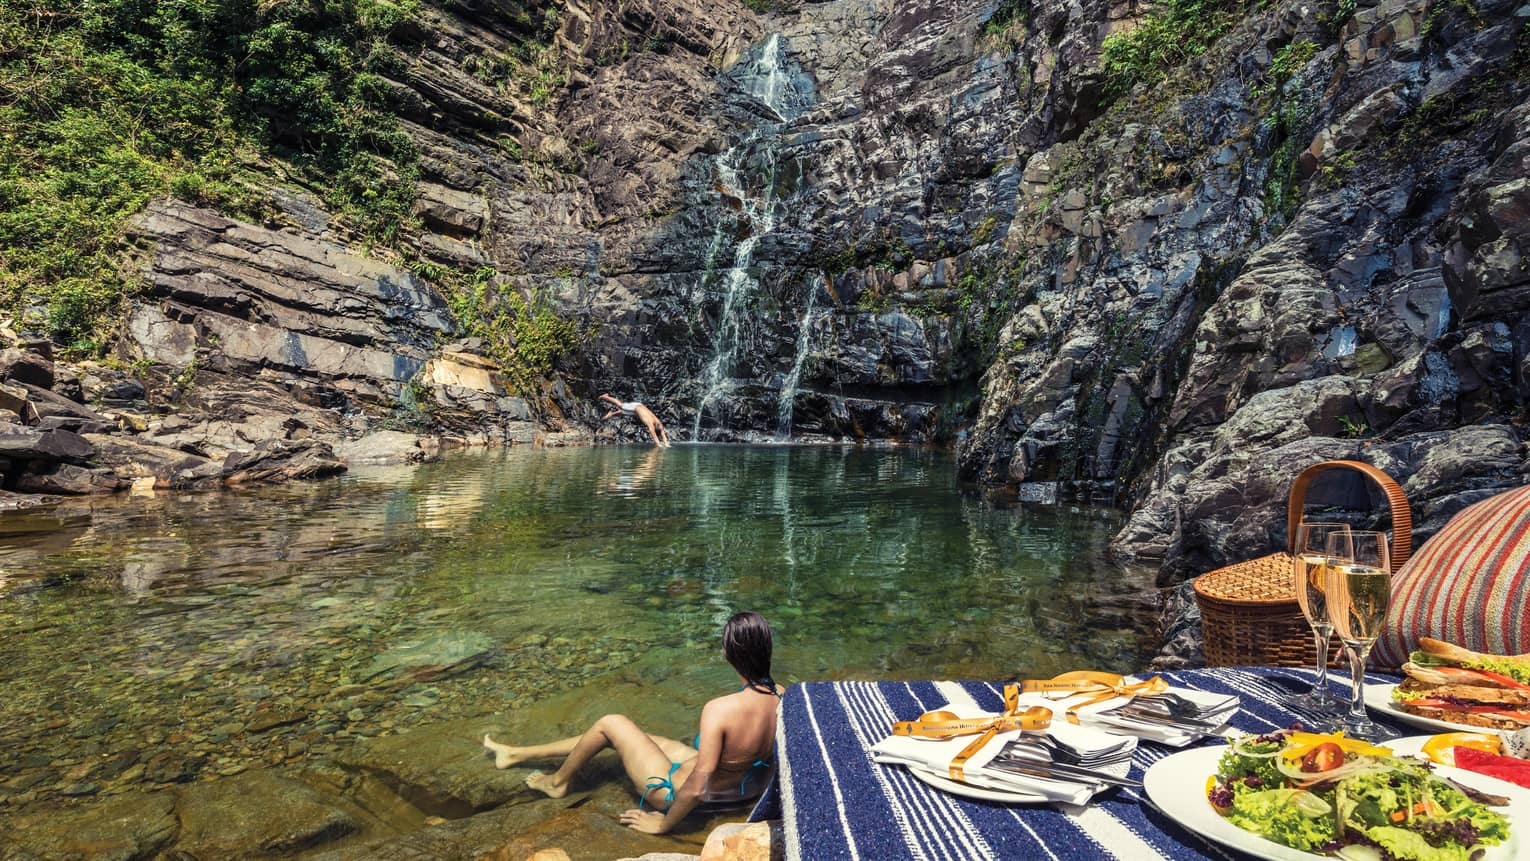 Woman wades in water at bottom of waterfall by picnic lunch set up on rocks